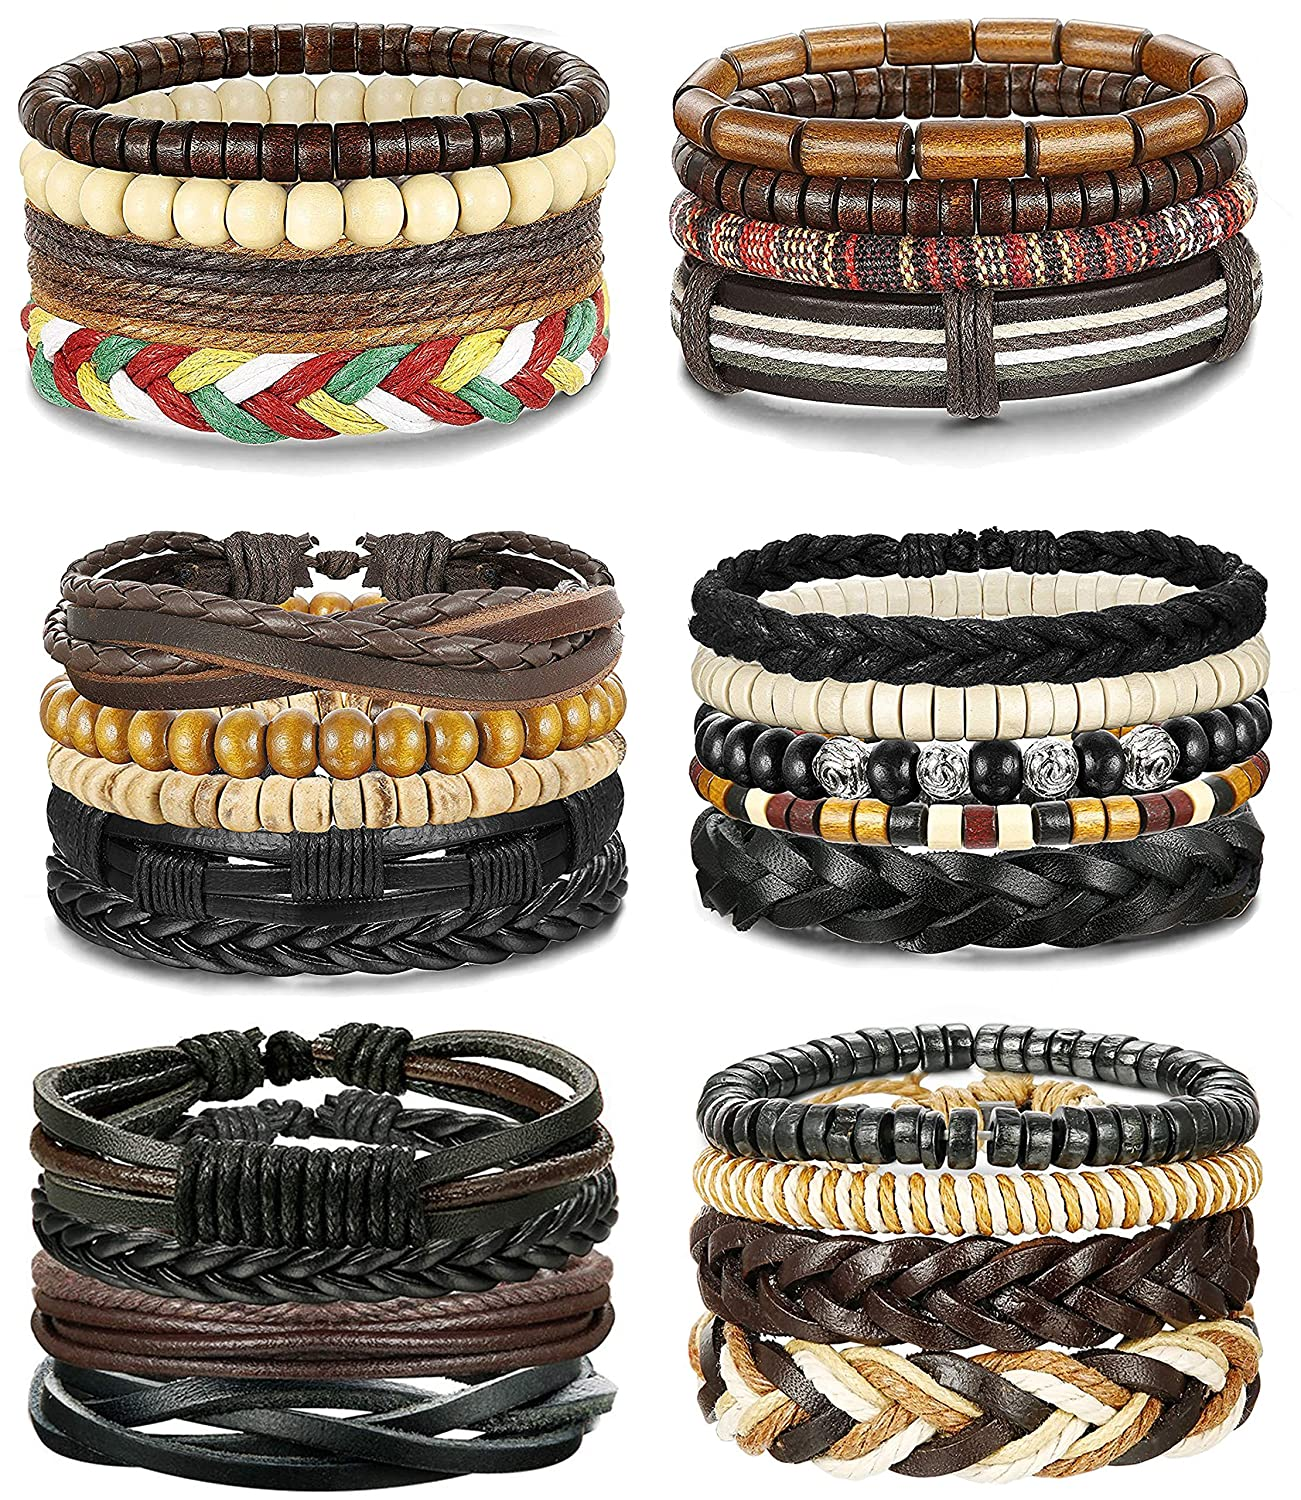 FIBO STEEL 25-26 Pcs Braided Leather Bracelets for Men Women Cool Wrist Cuff Bracelet,Adjustable FBB-PSL-25